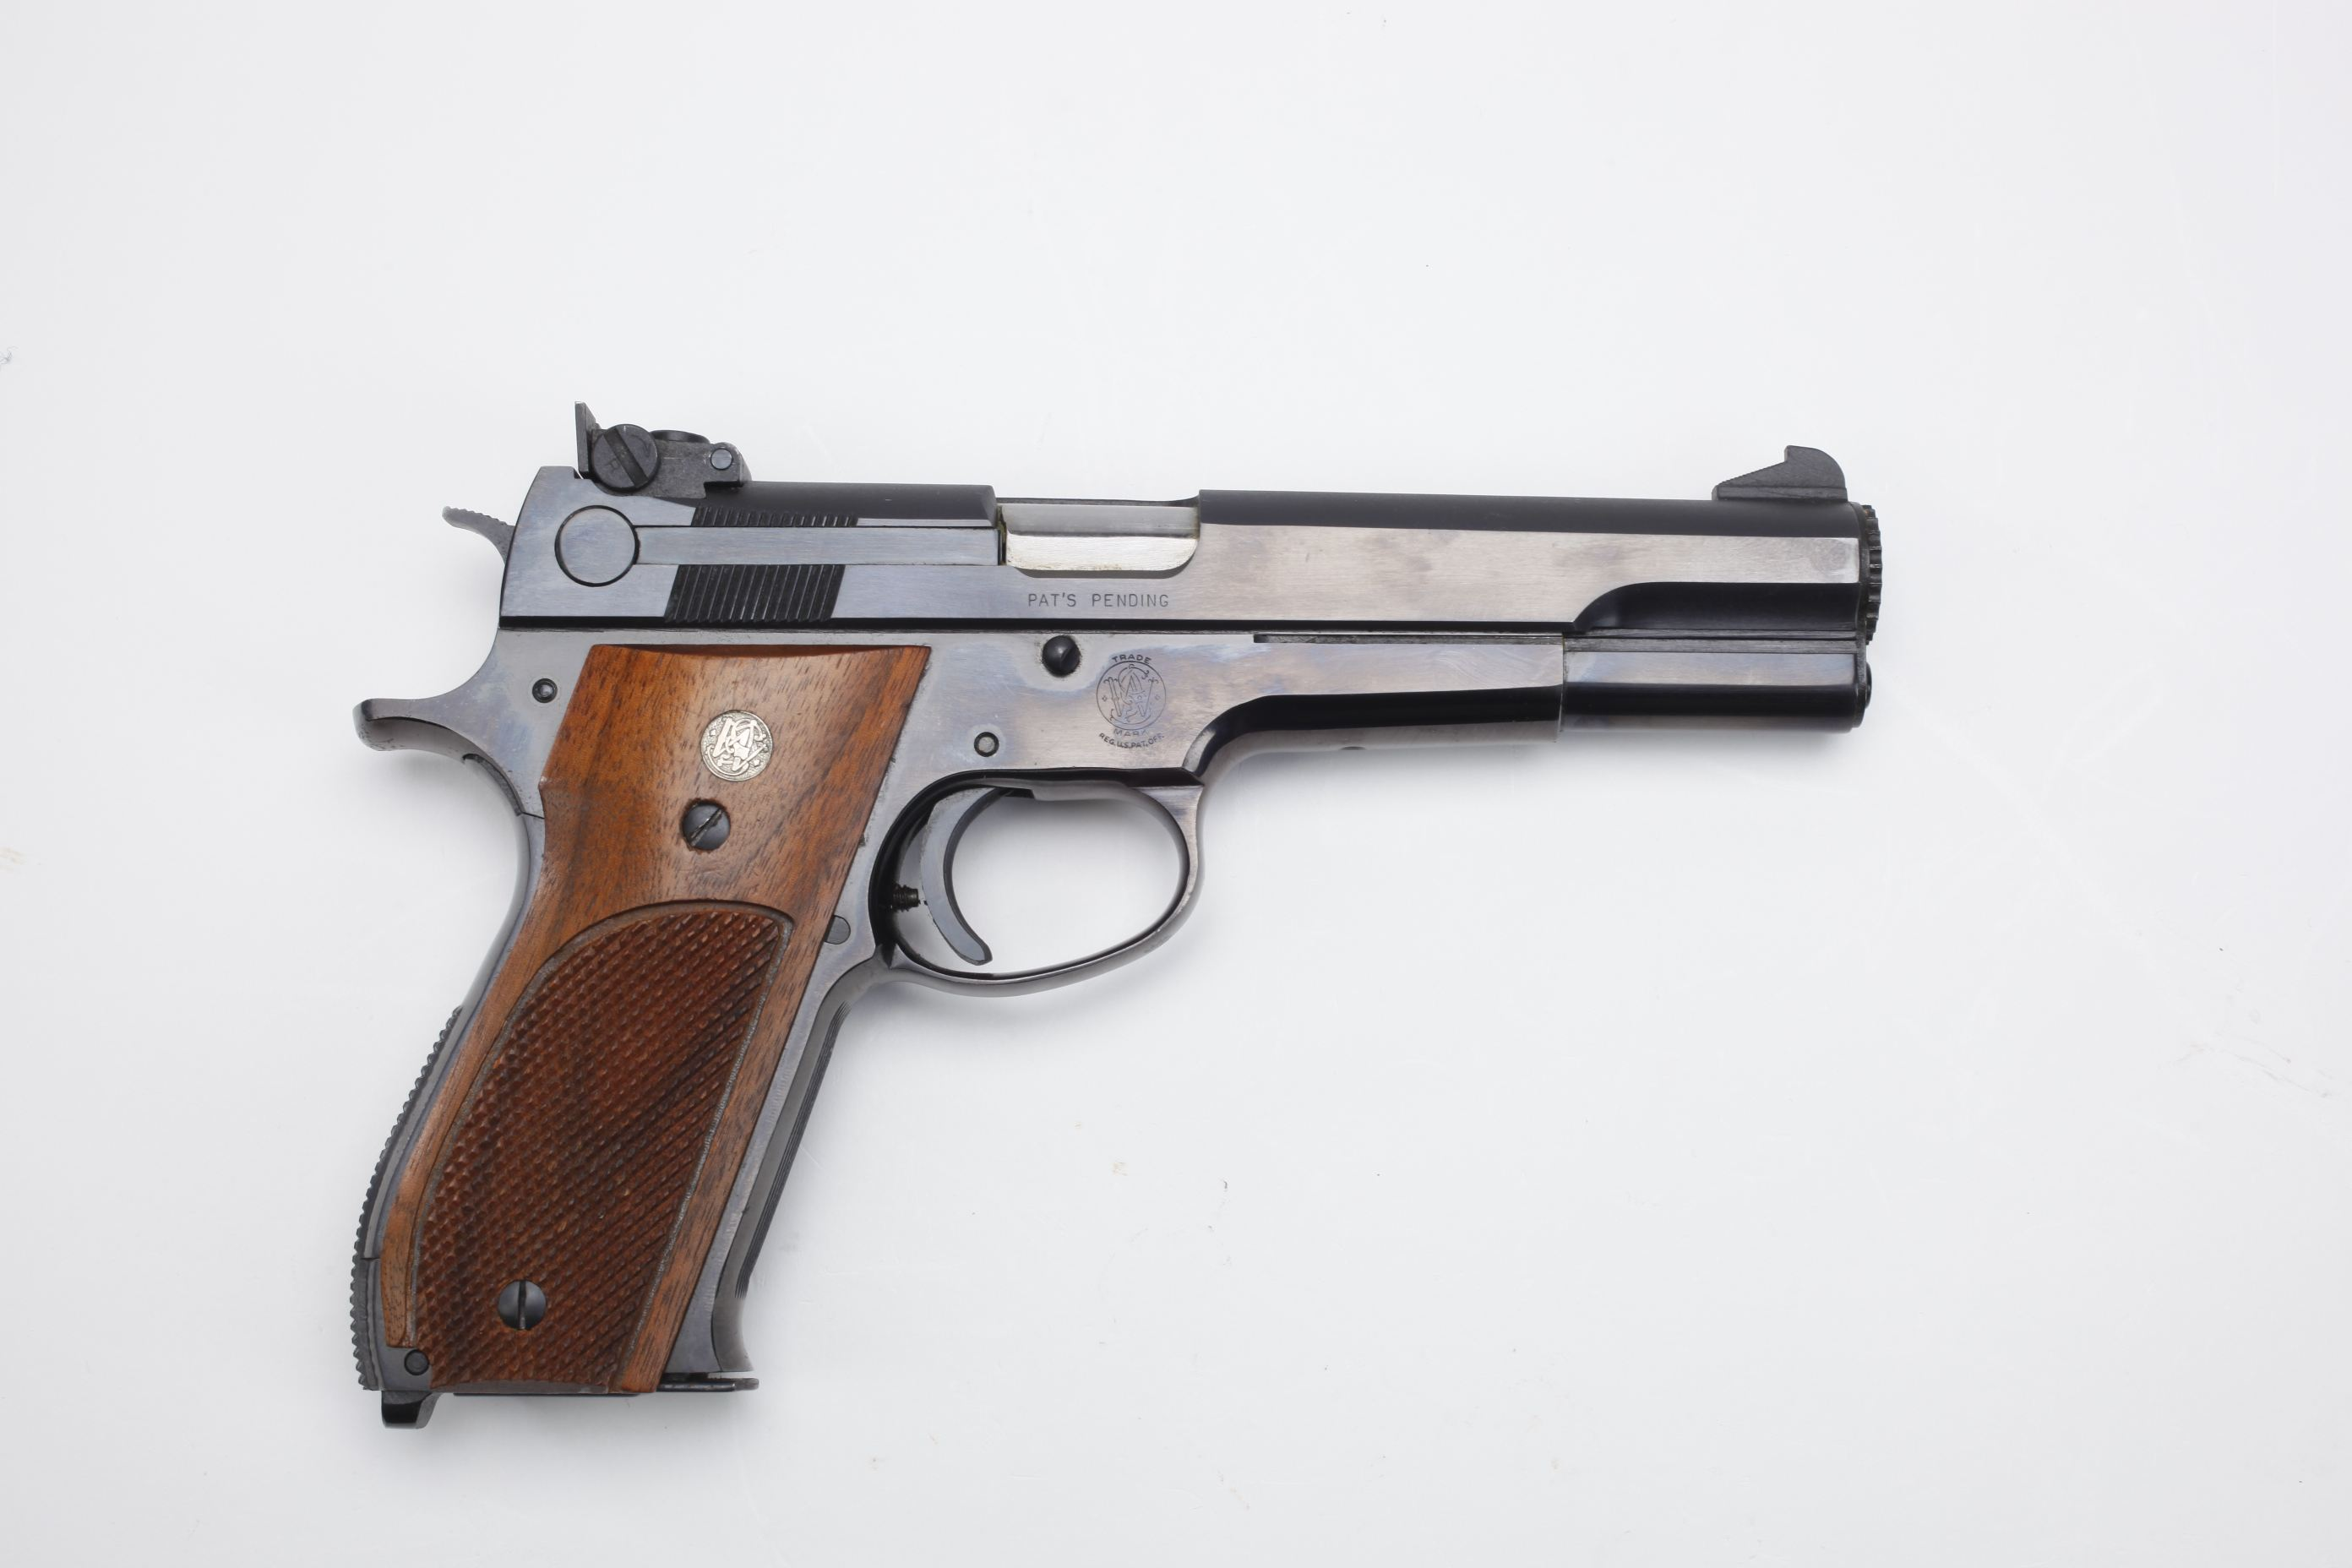 Smith & Wesson Model 52 1 Semi Automatic Pistol